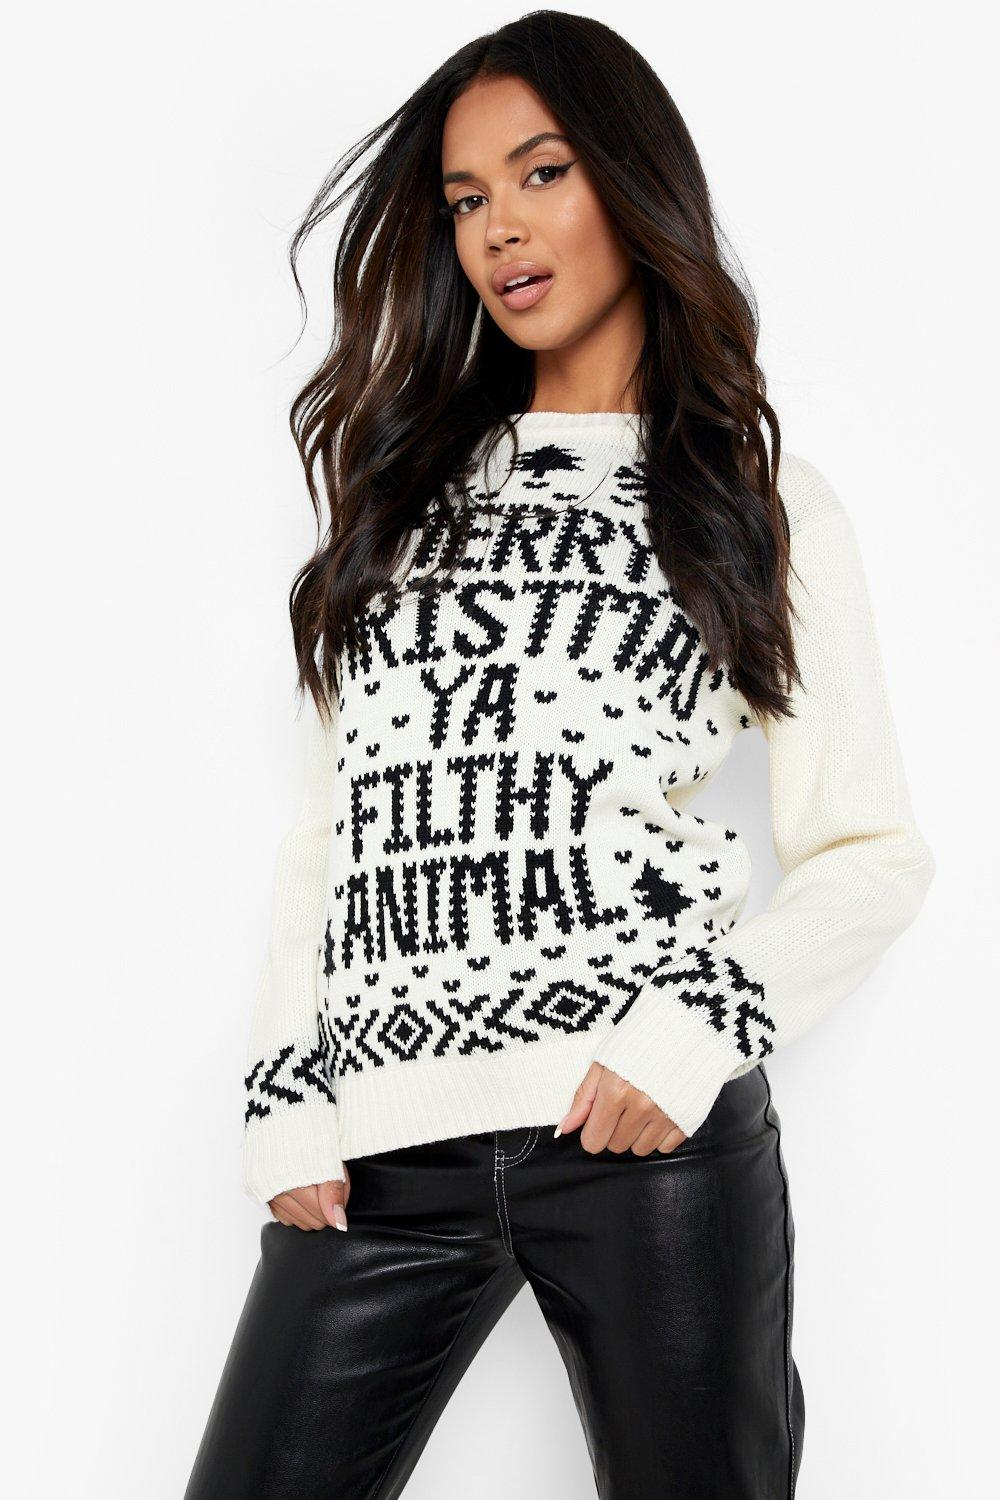 d88b1d1563847 Boohoo Womens Christmas Jumper Sweater Xmas Gift In Multi Colours ...